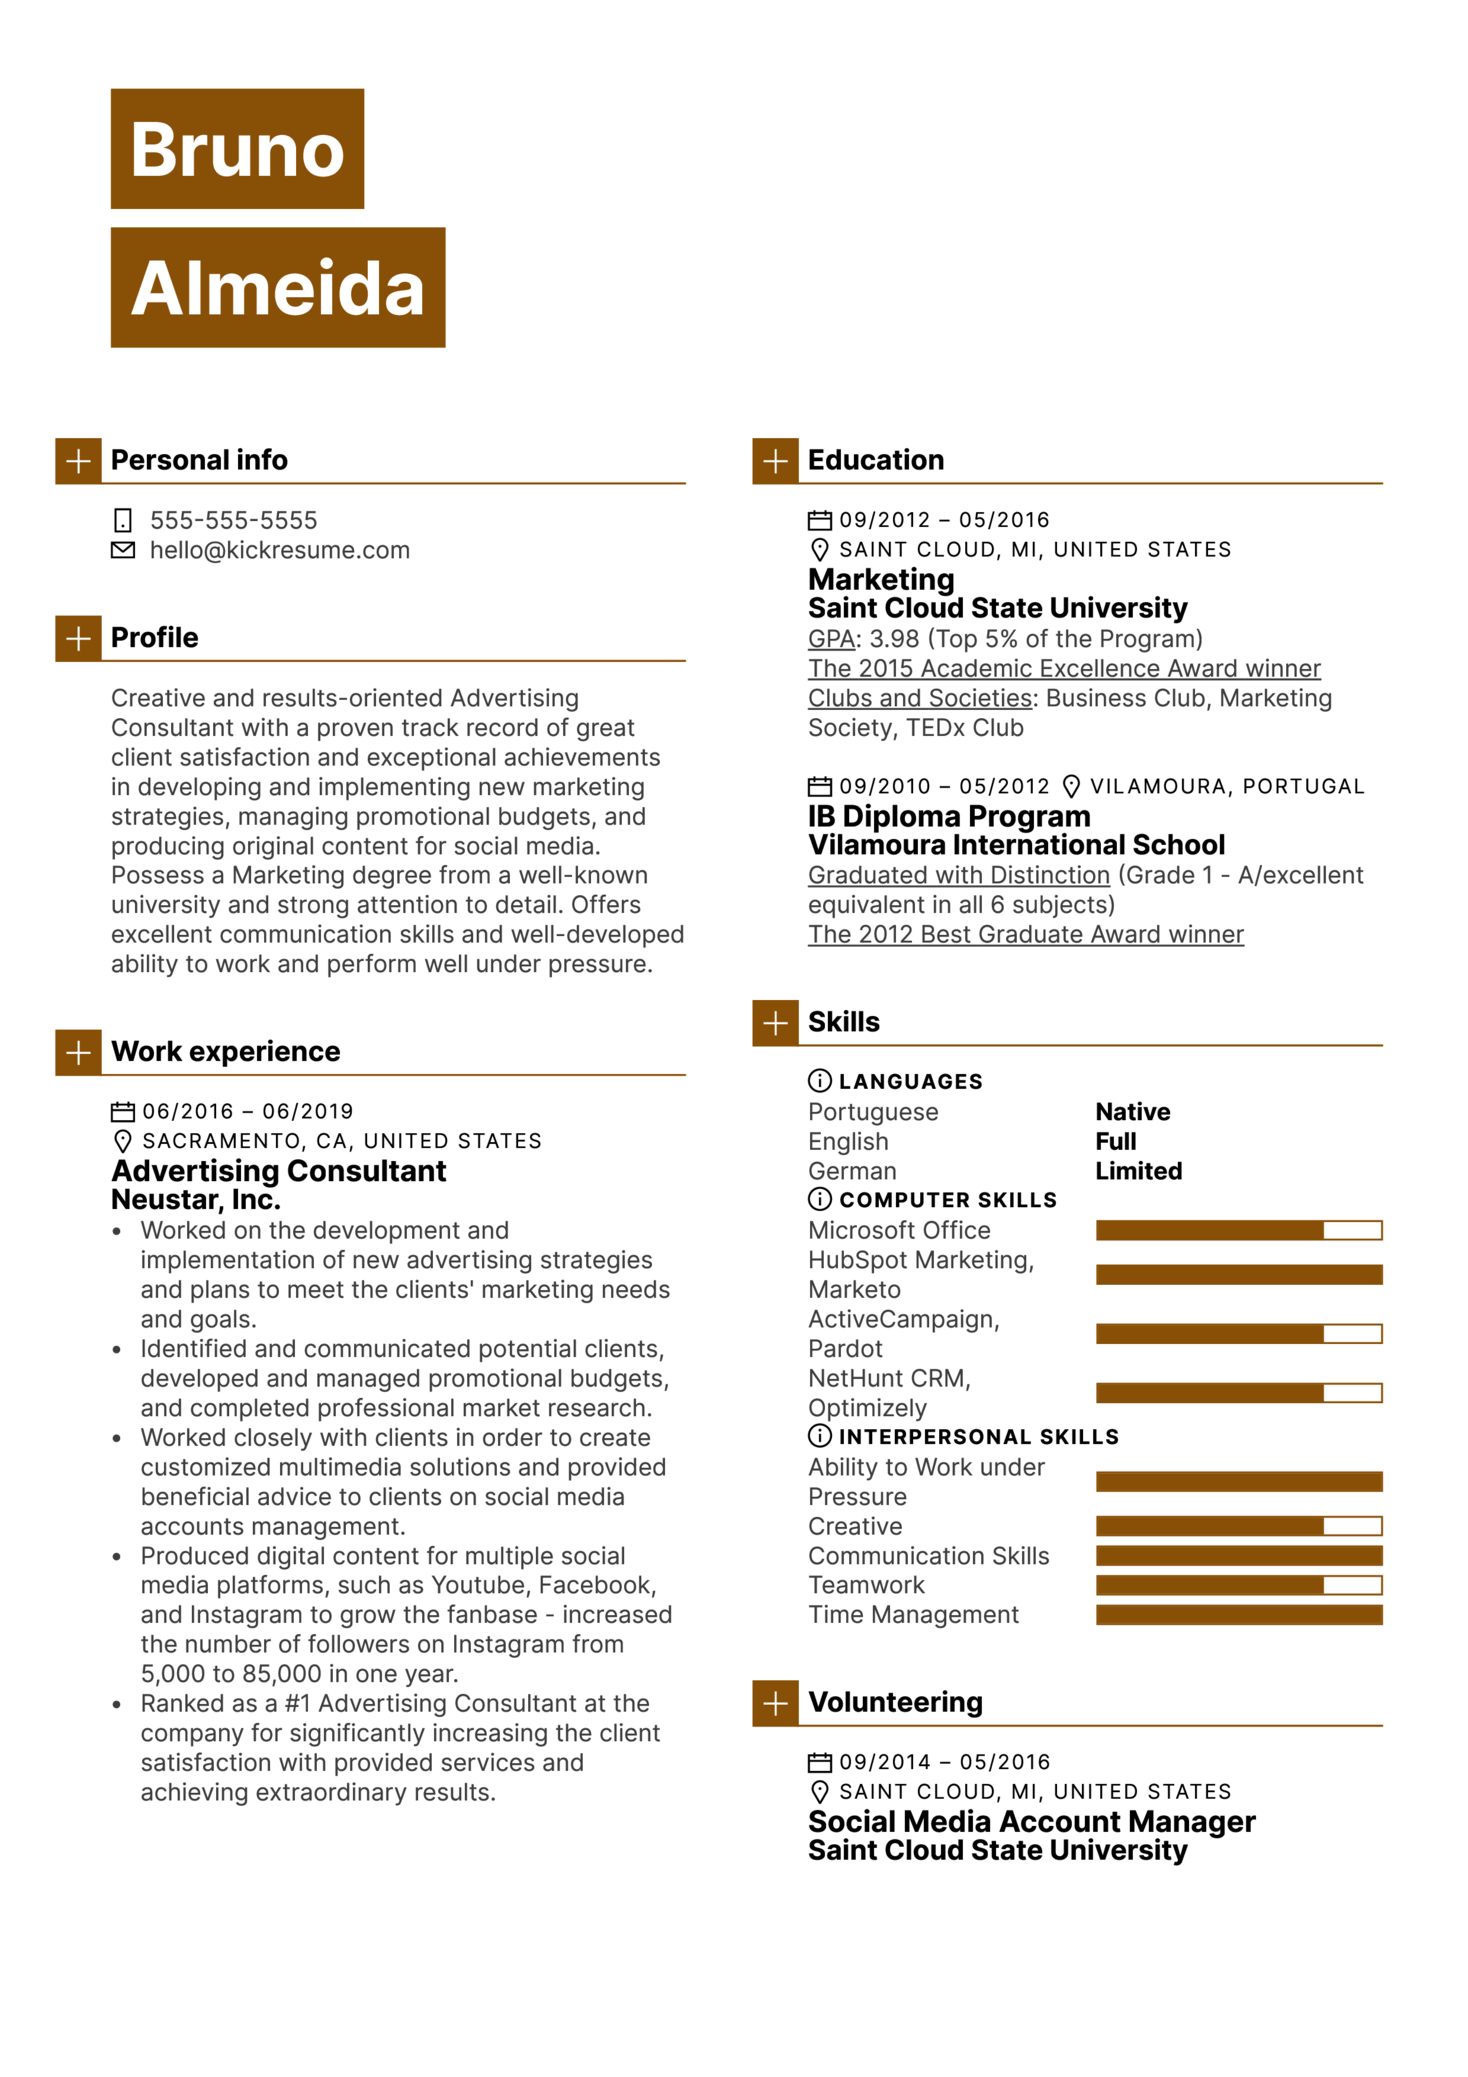 Advertising Consultant Resume Example (parte 1)